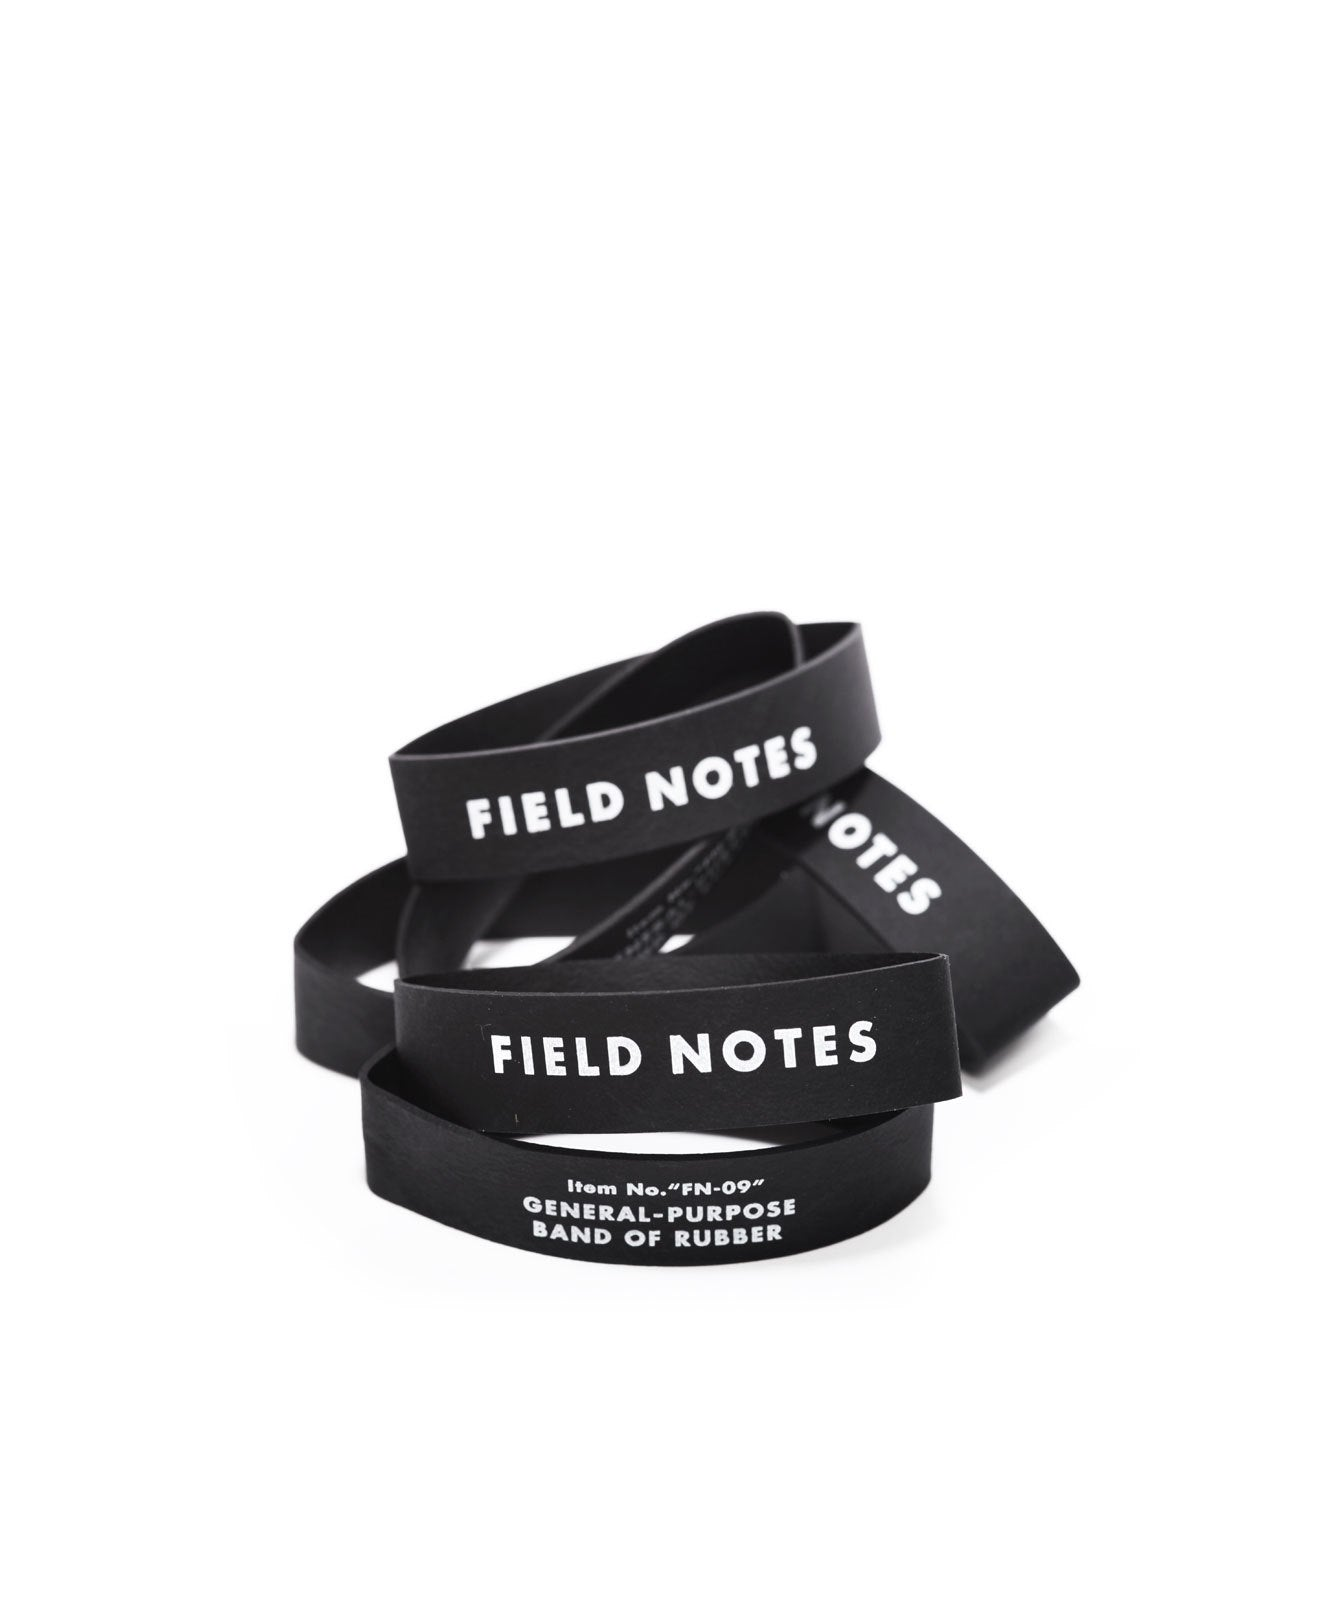 "A pile of 3"" by 5/8"" black rubber bands with Field Notes logo in white ink."